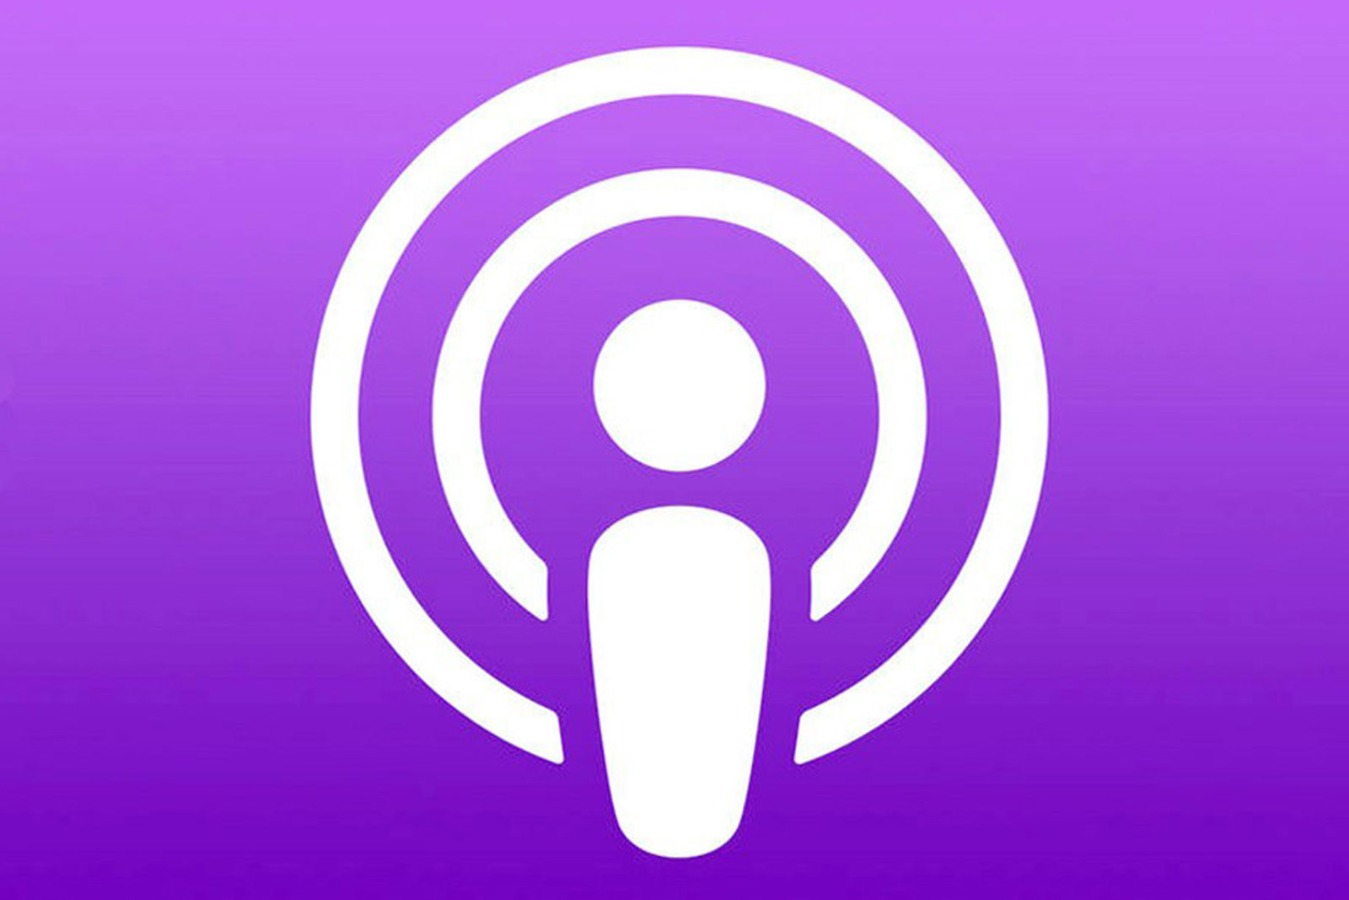 1000 iTunes Store Podcast Streams [All Episodes] [WW]